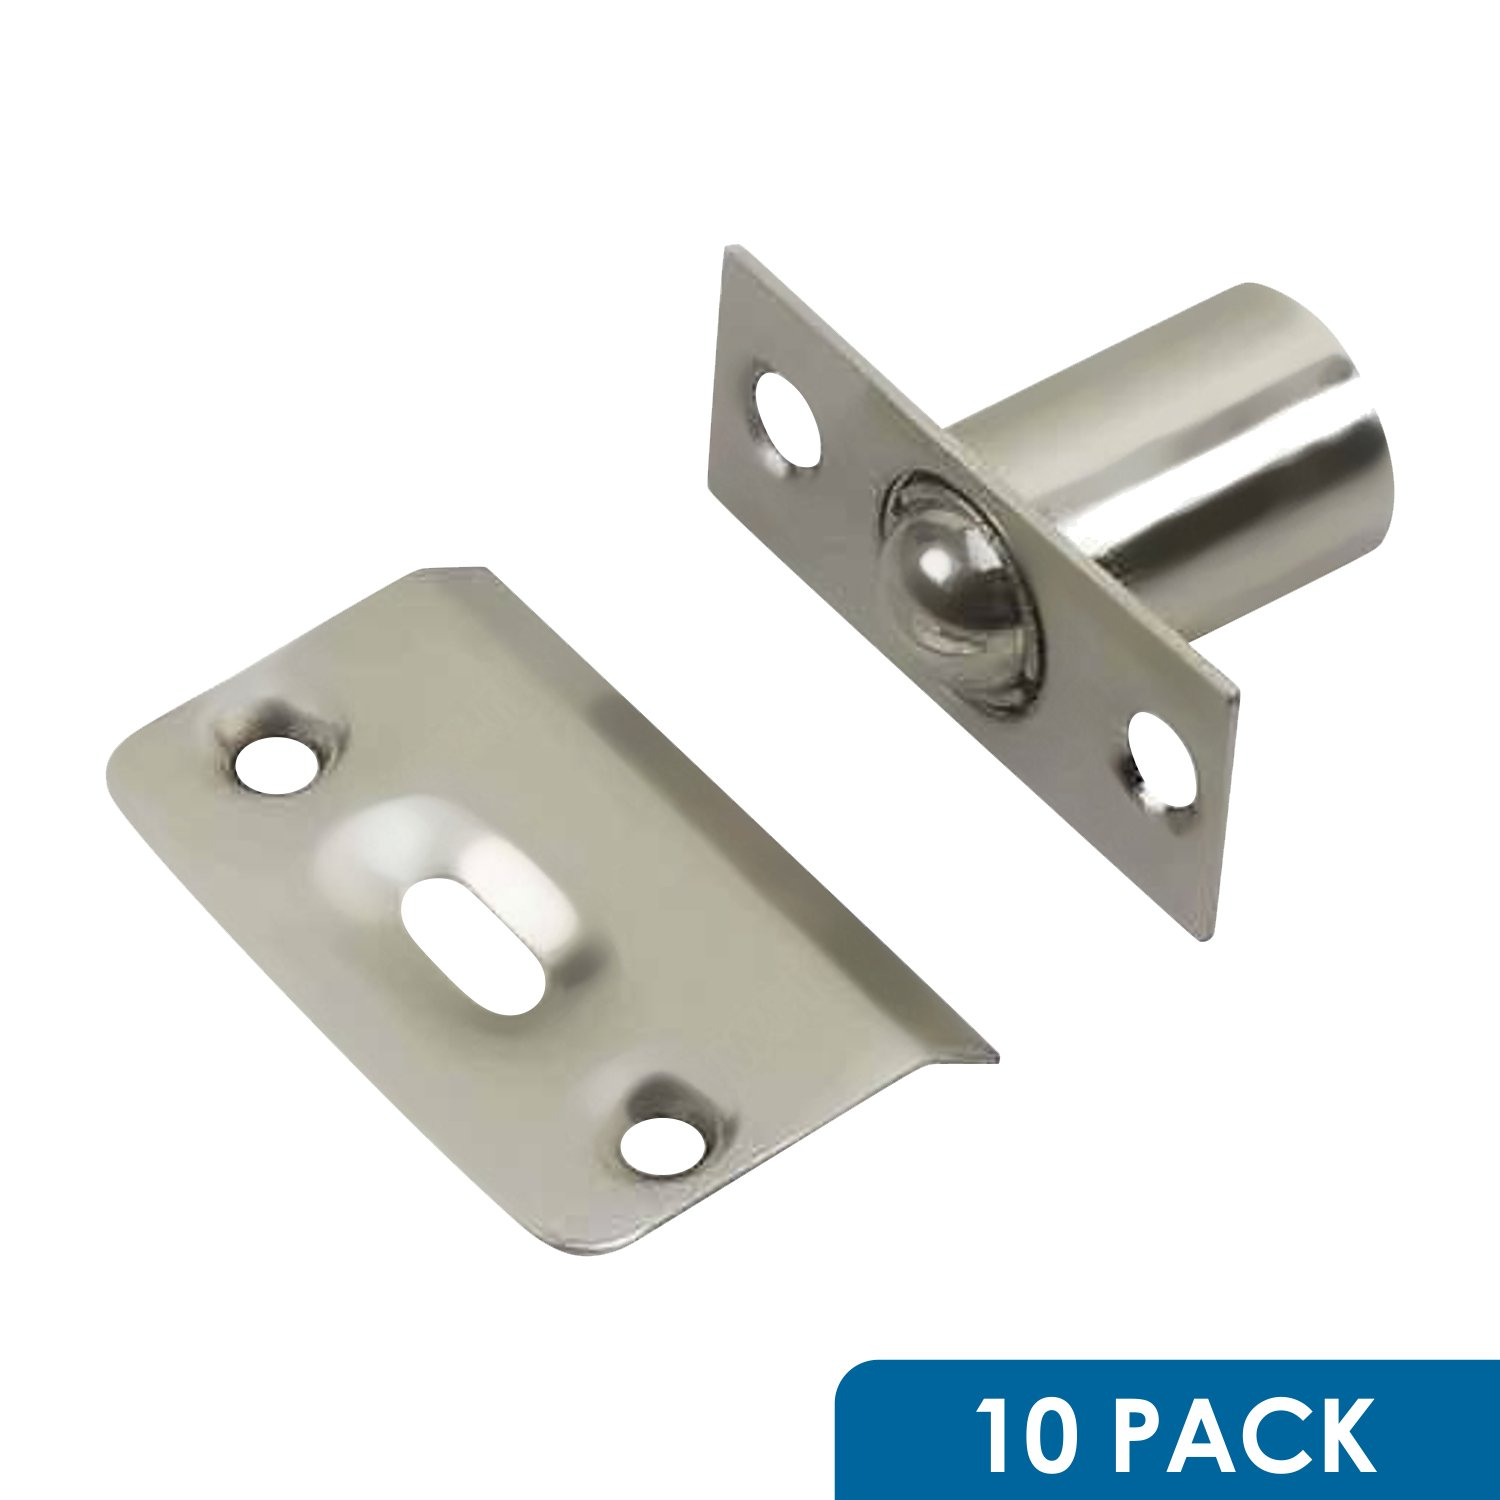 10 Pack Rok Hardware Brushed Nickel Adjustable Large Closet Cabinet Ball Catch Latch With Radius Corners And Strike